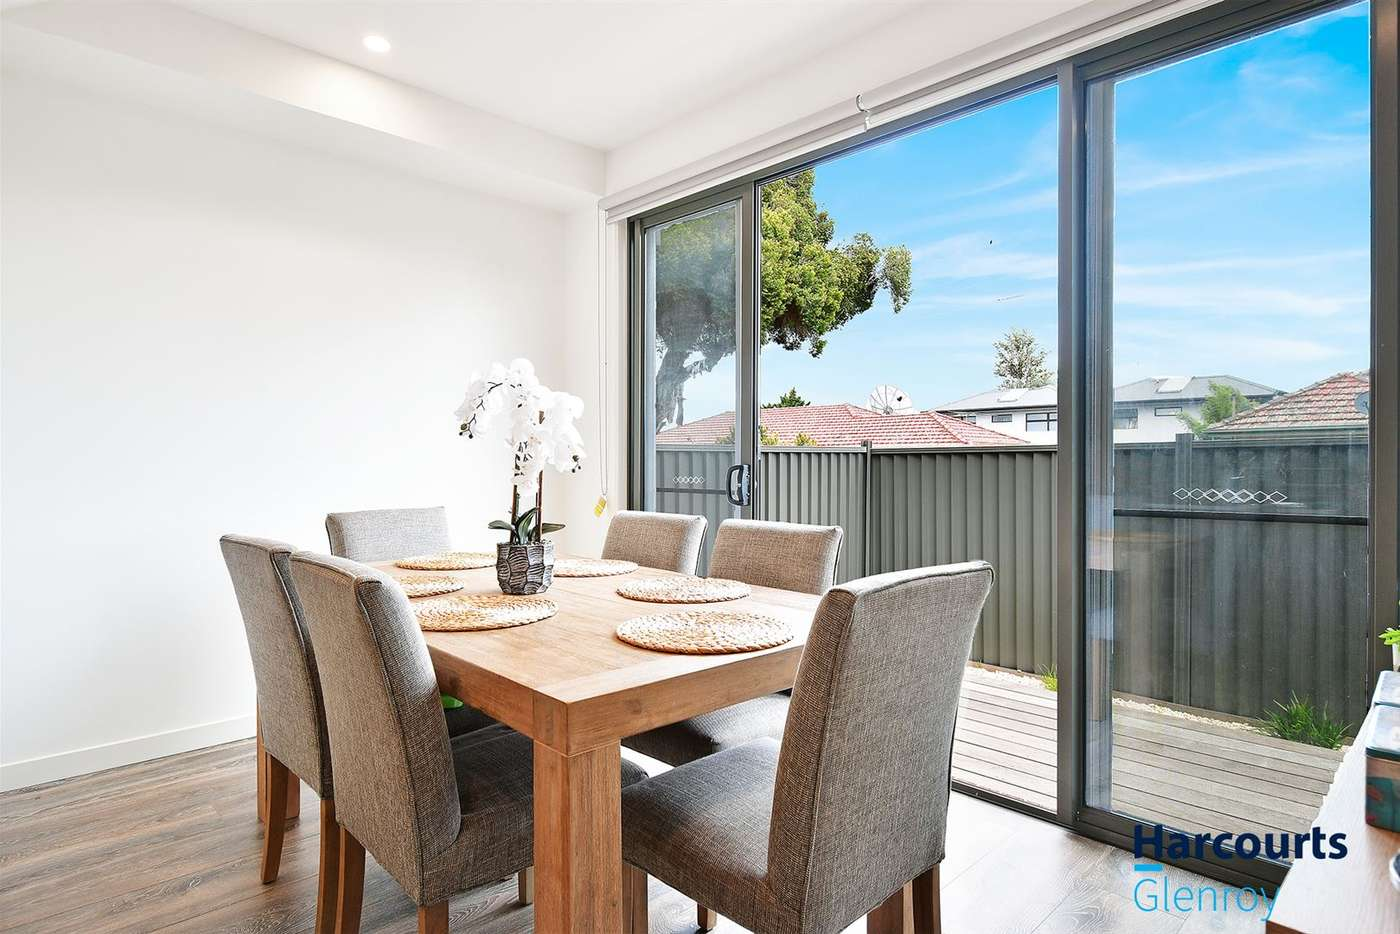 Sixth view of Homely townhouse listing, 44 Morley Street, Glenroy VIC 3046